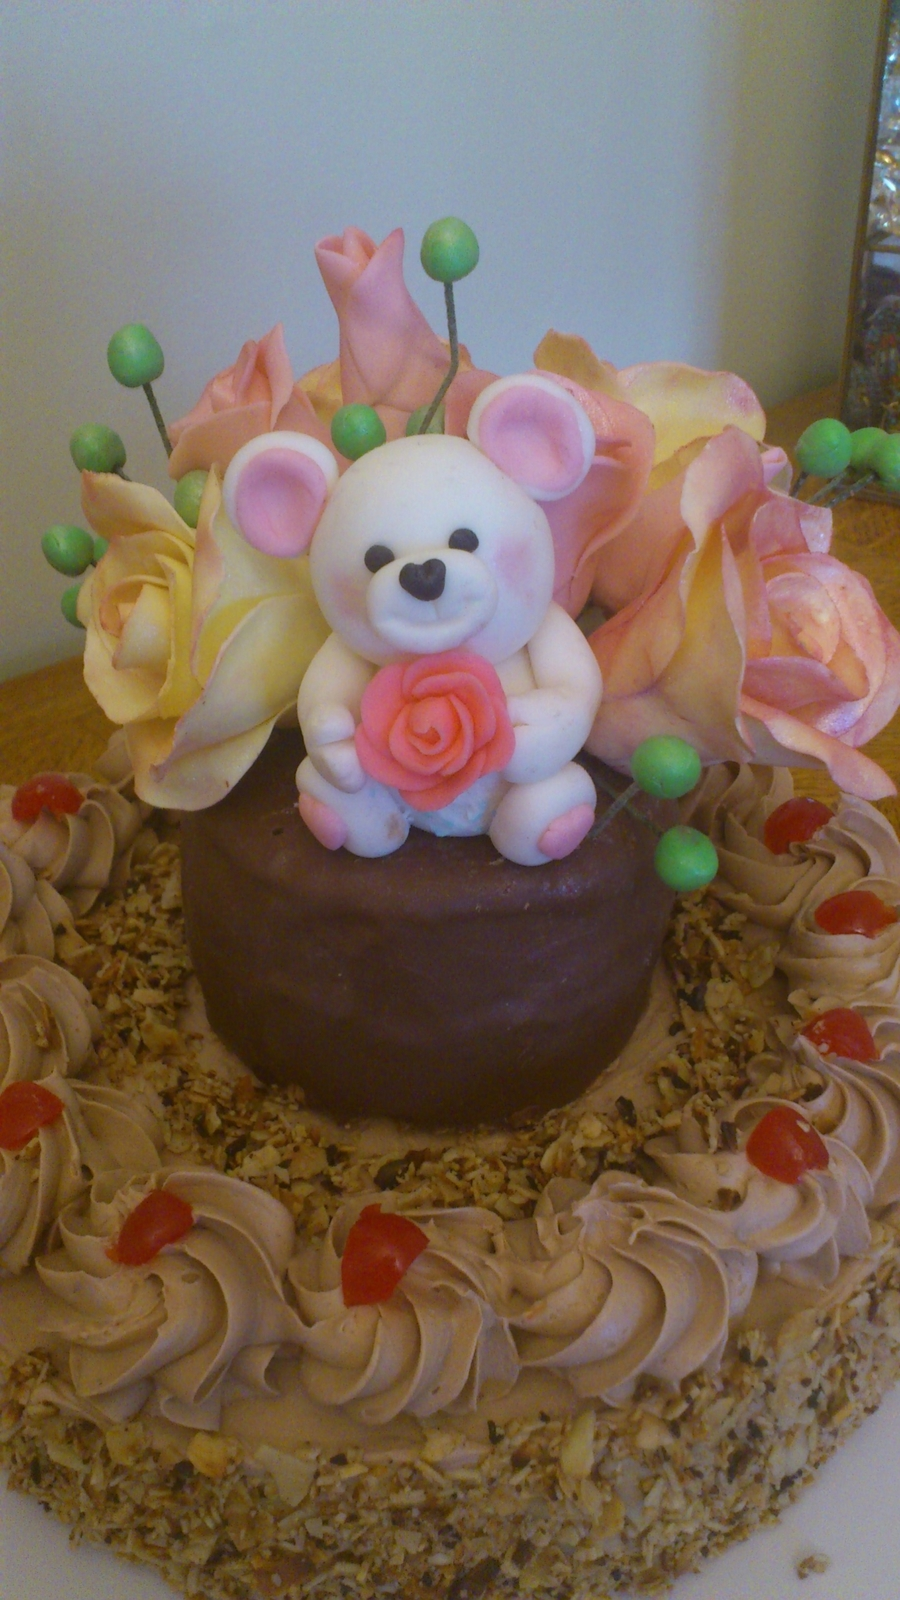 Flower Cake With Bear on Cake Central